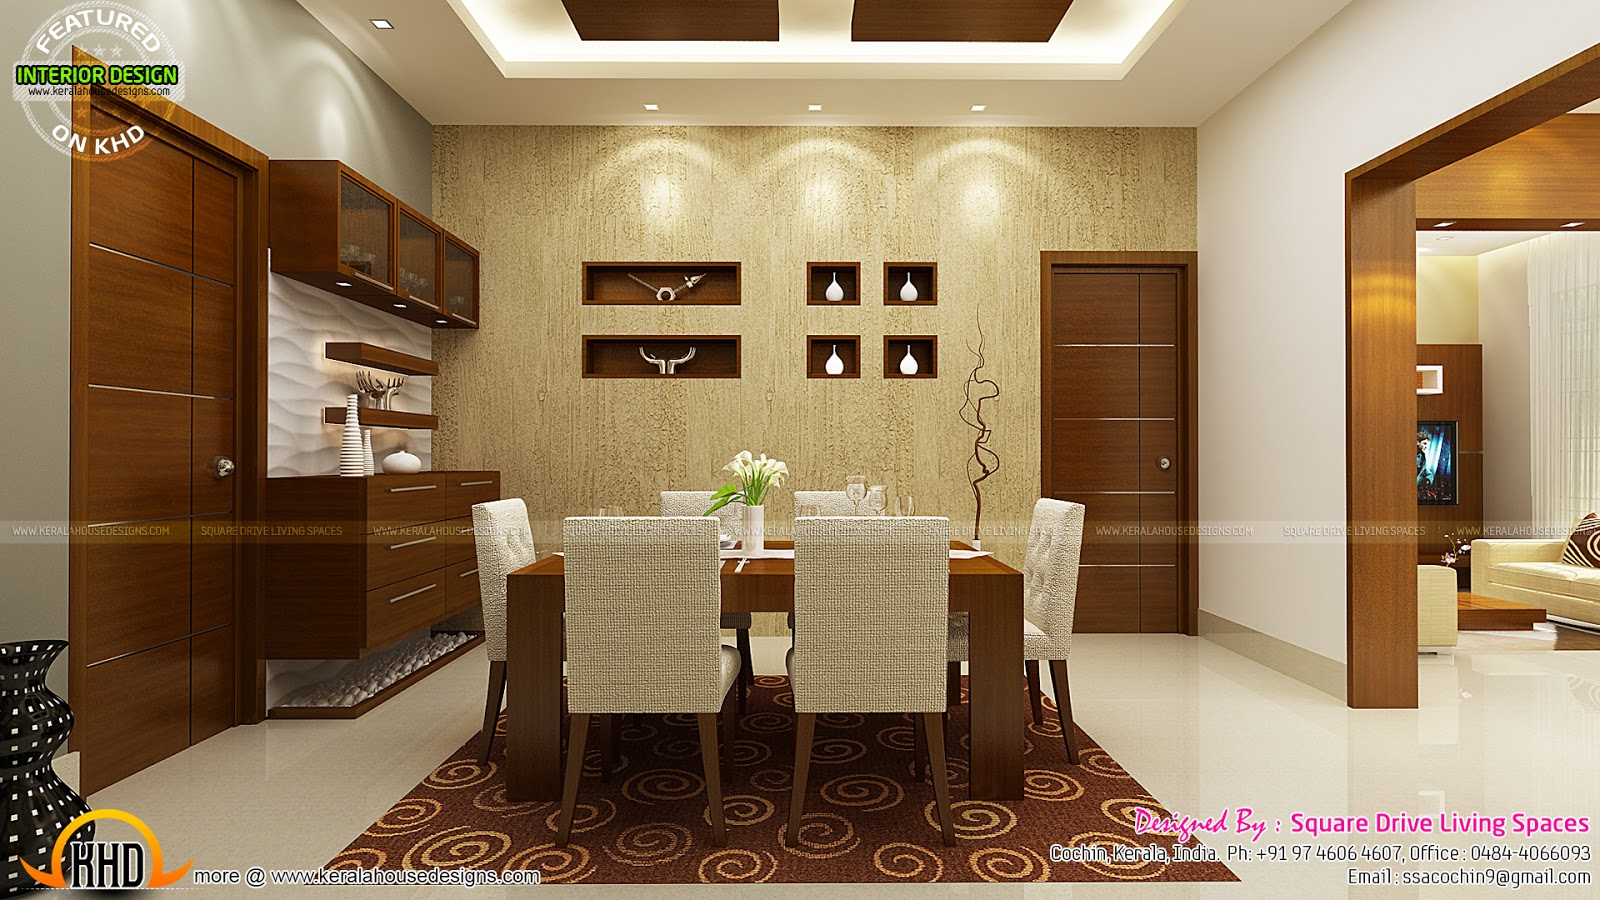 Contemporary kitchen dining and living room kerala home for Simple home interior design images